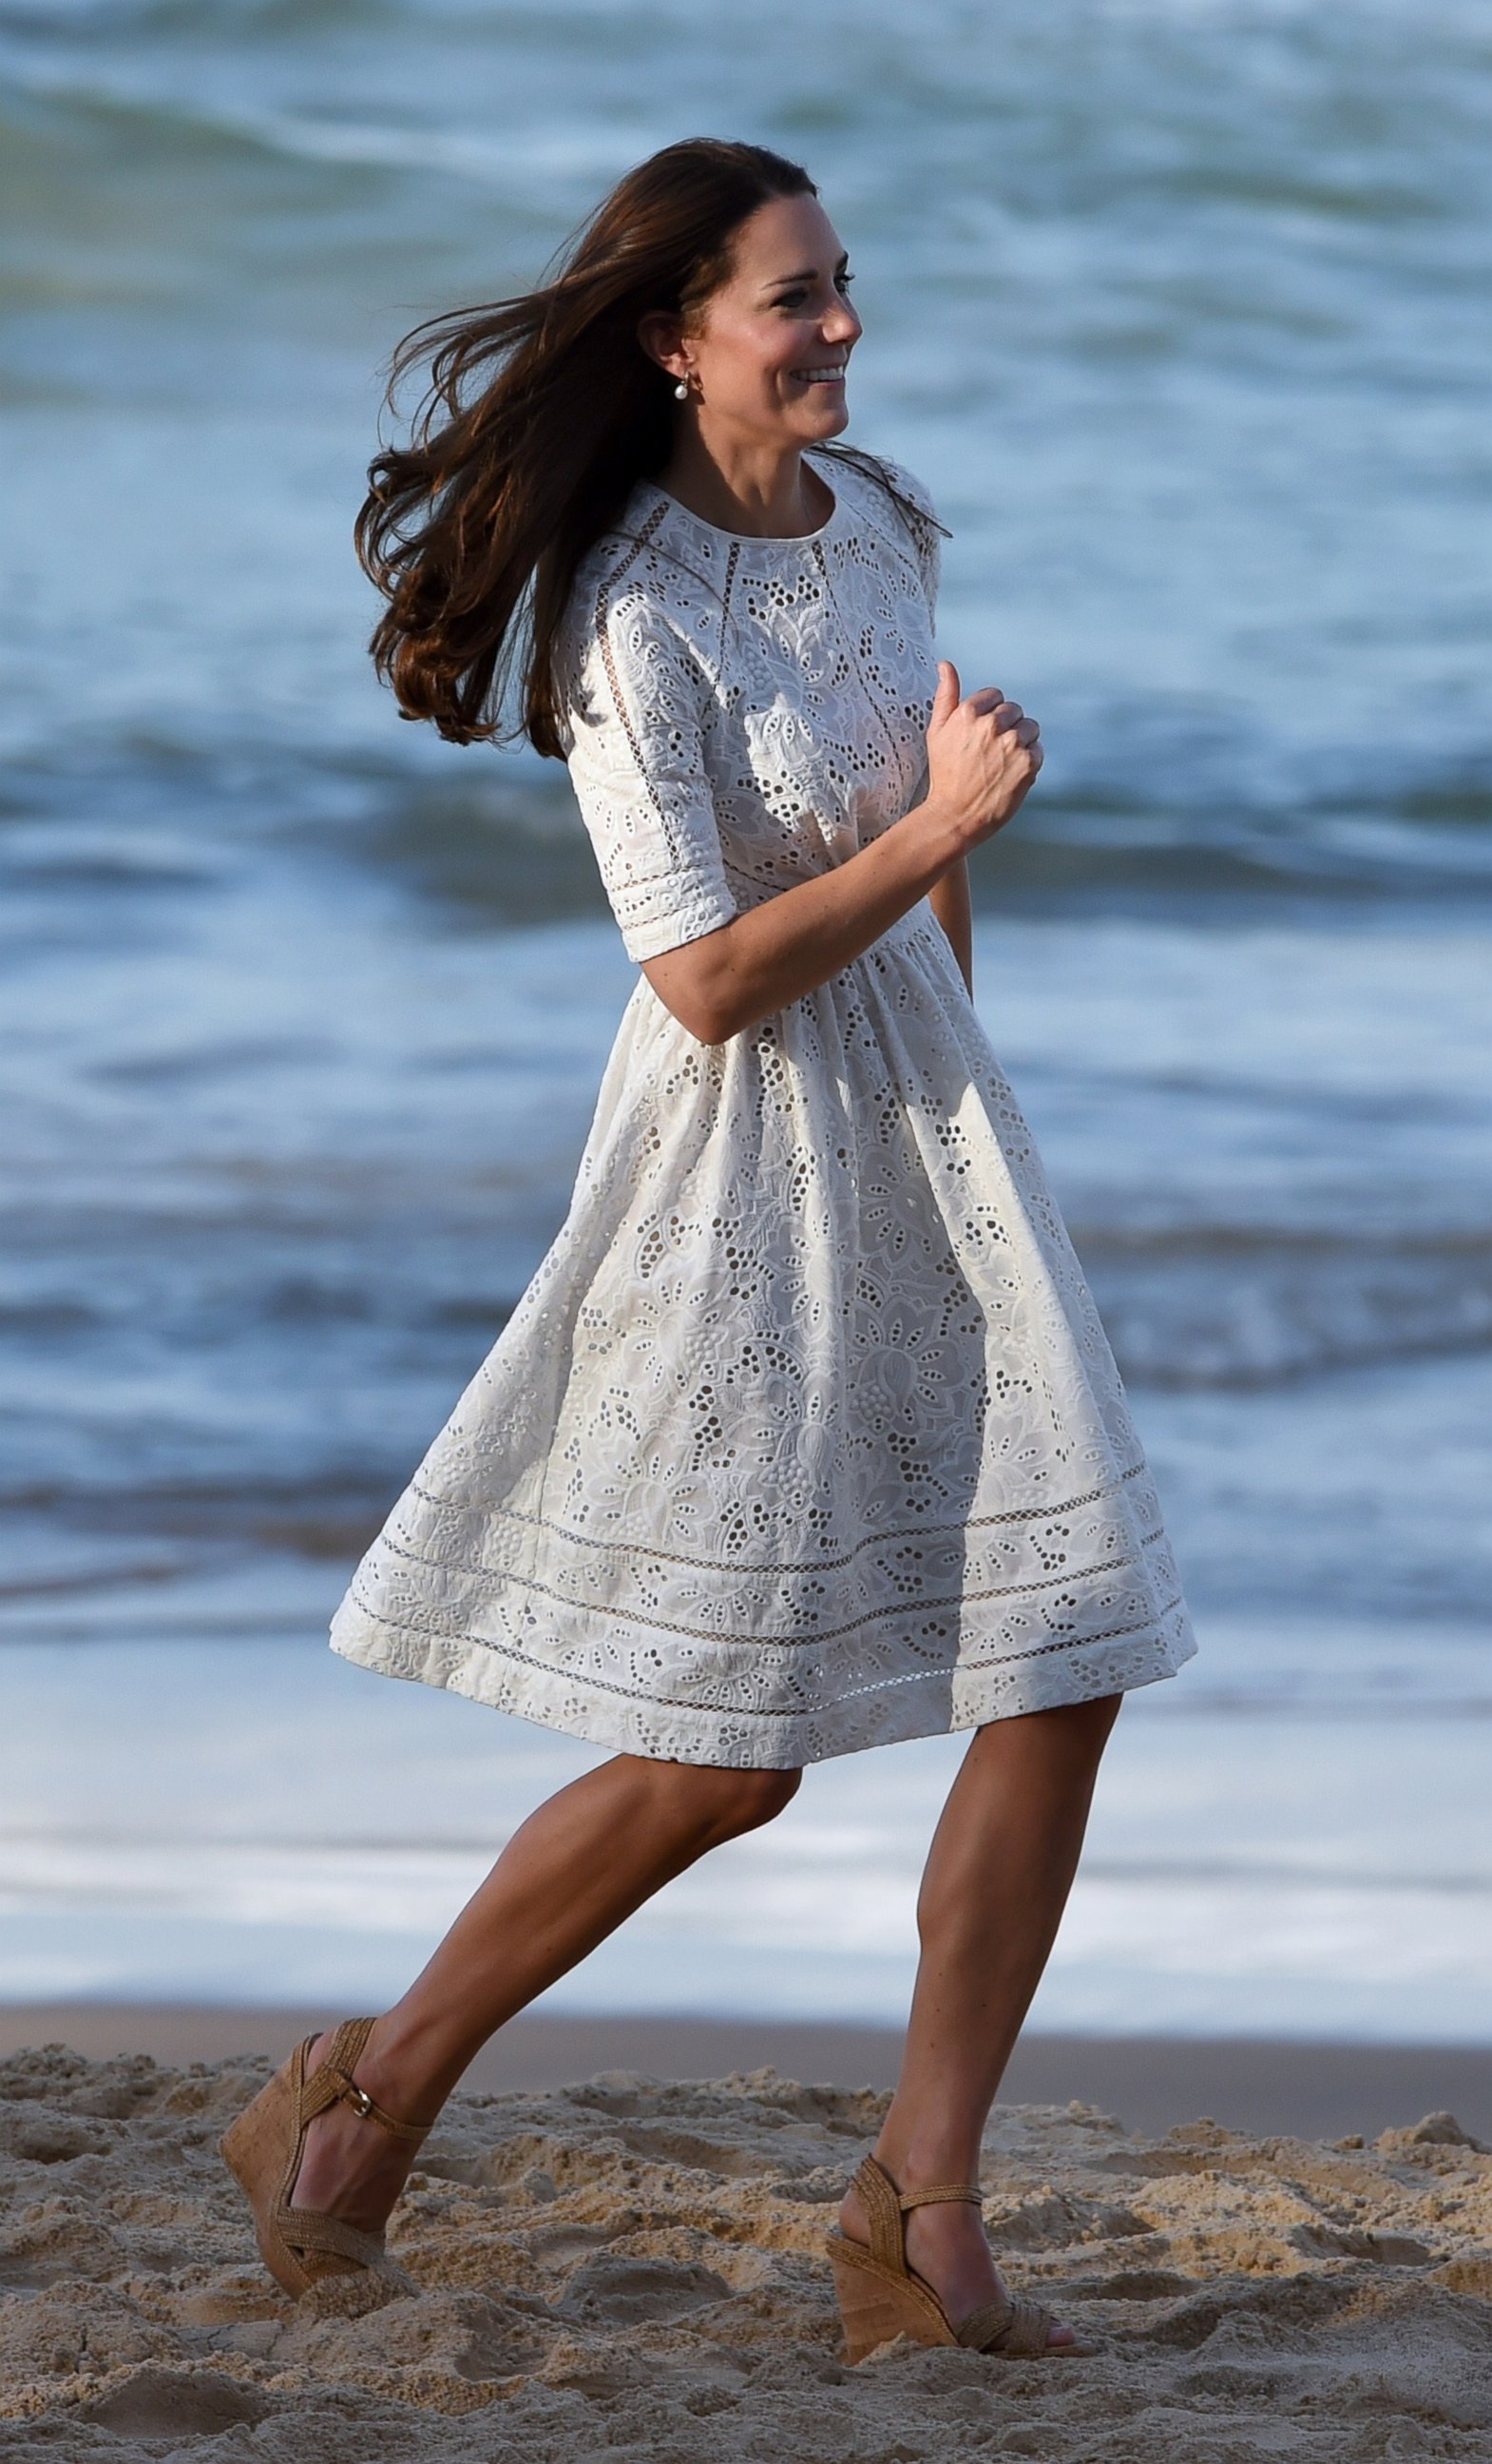 Kate Middleton Runs on the Beach in Heels